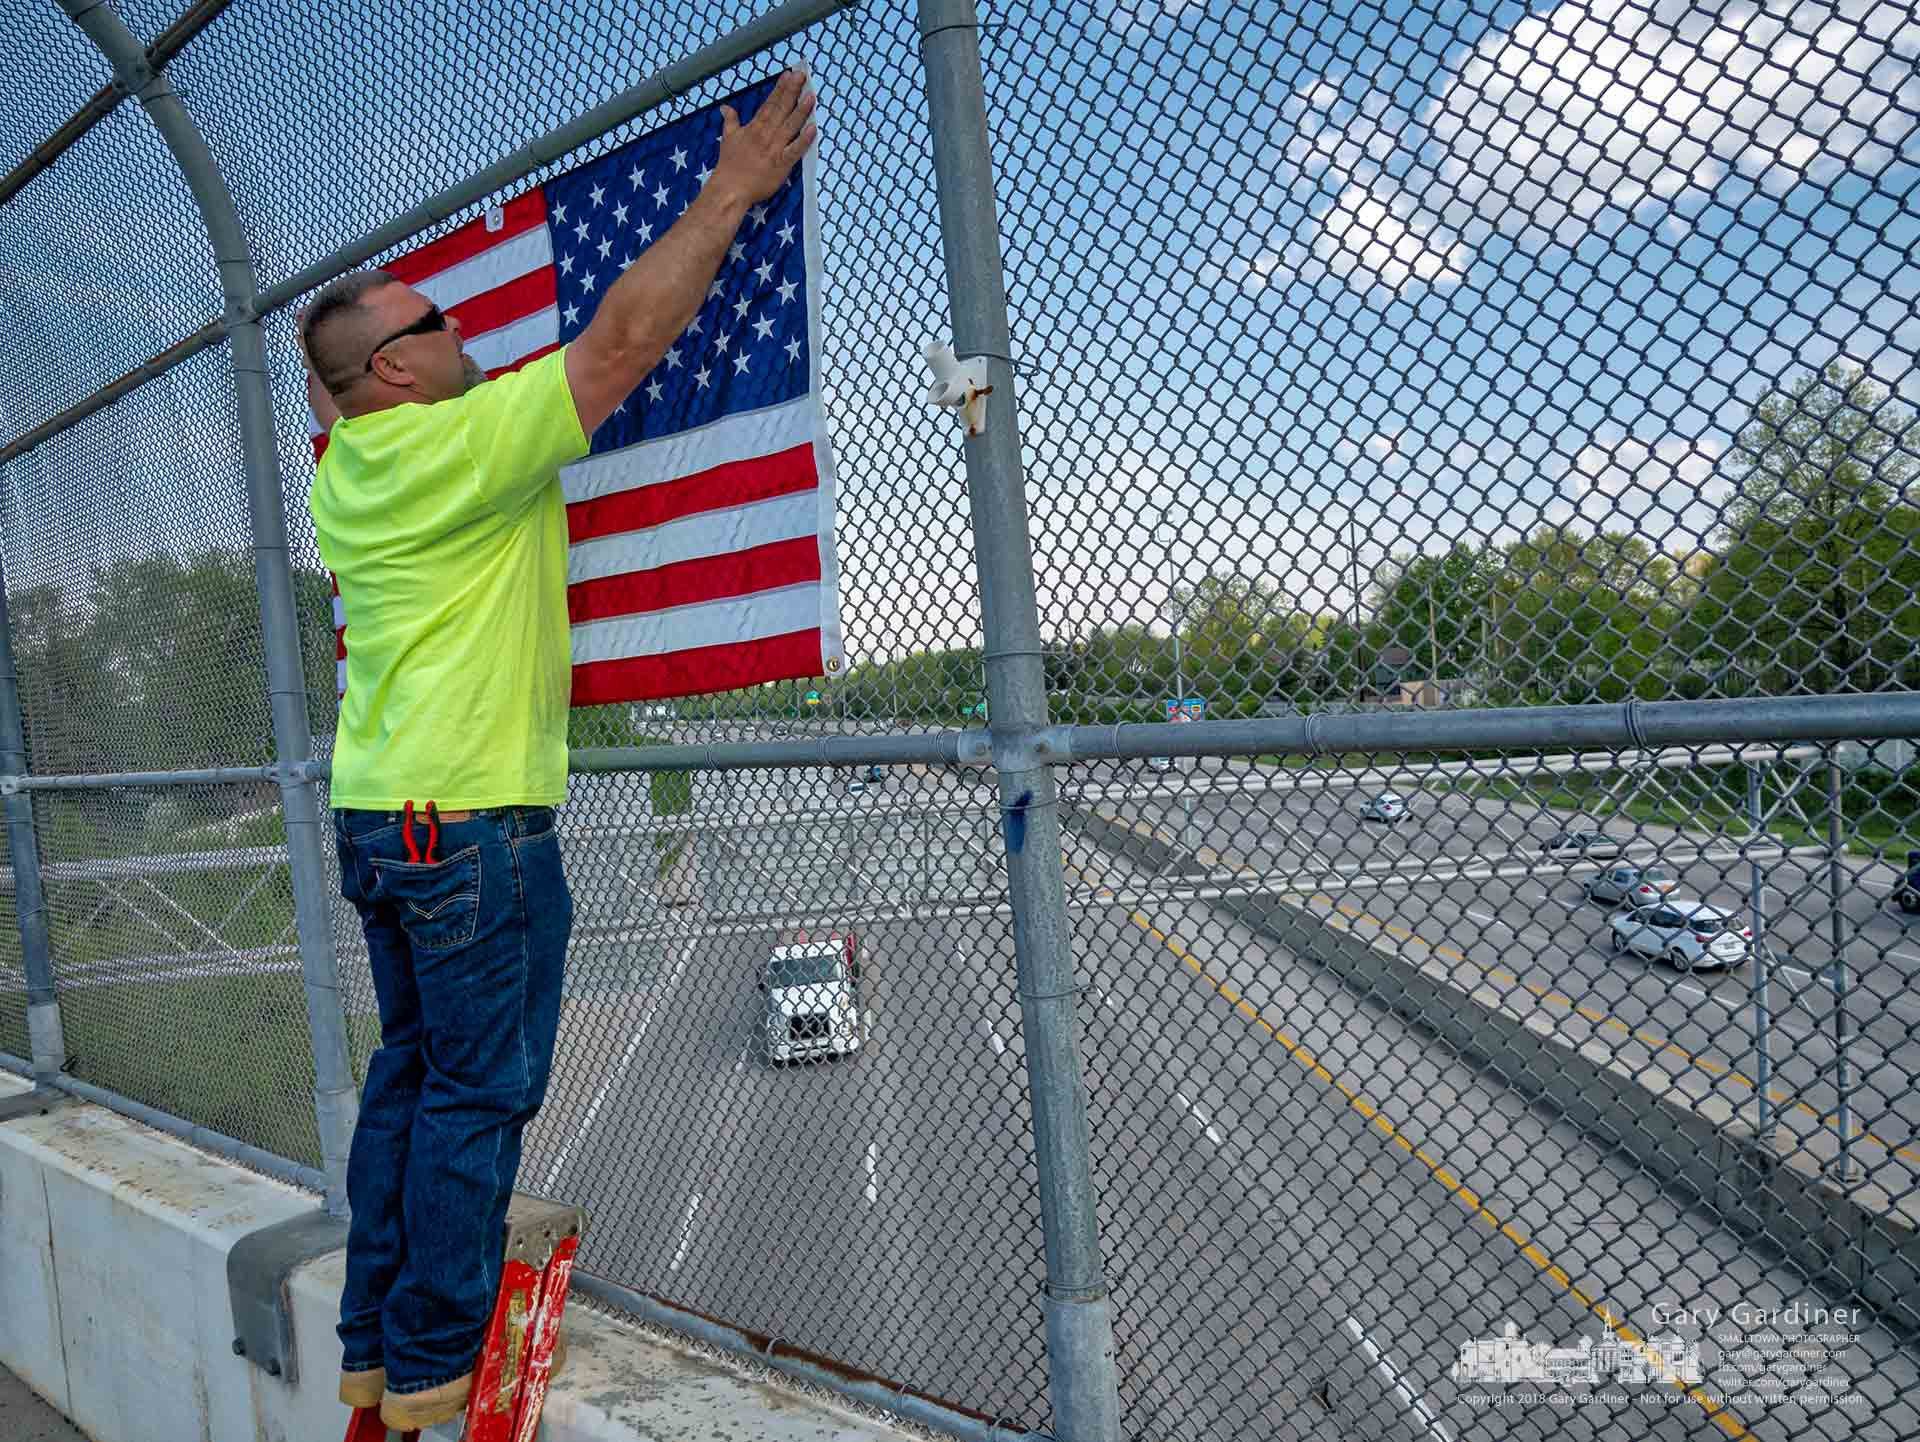 Blendon Township workers replace flags on the chain link fence bordering the Dempsey Road Bridge over I-270 as part of the township's spring cleanup before Memorial Day. My Final Photo for May 9, 2018.